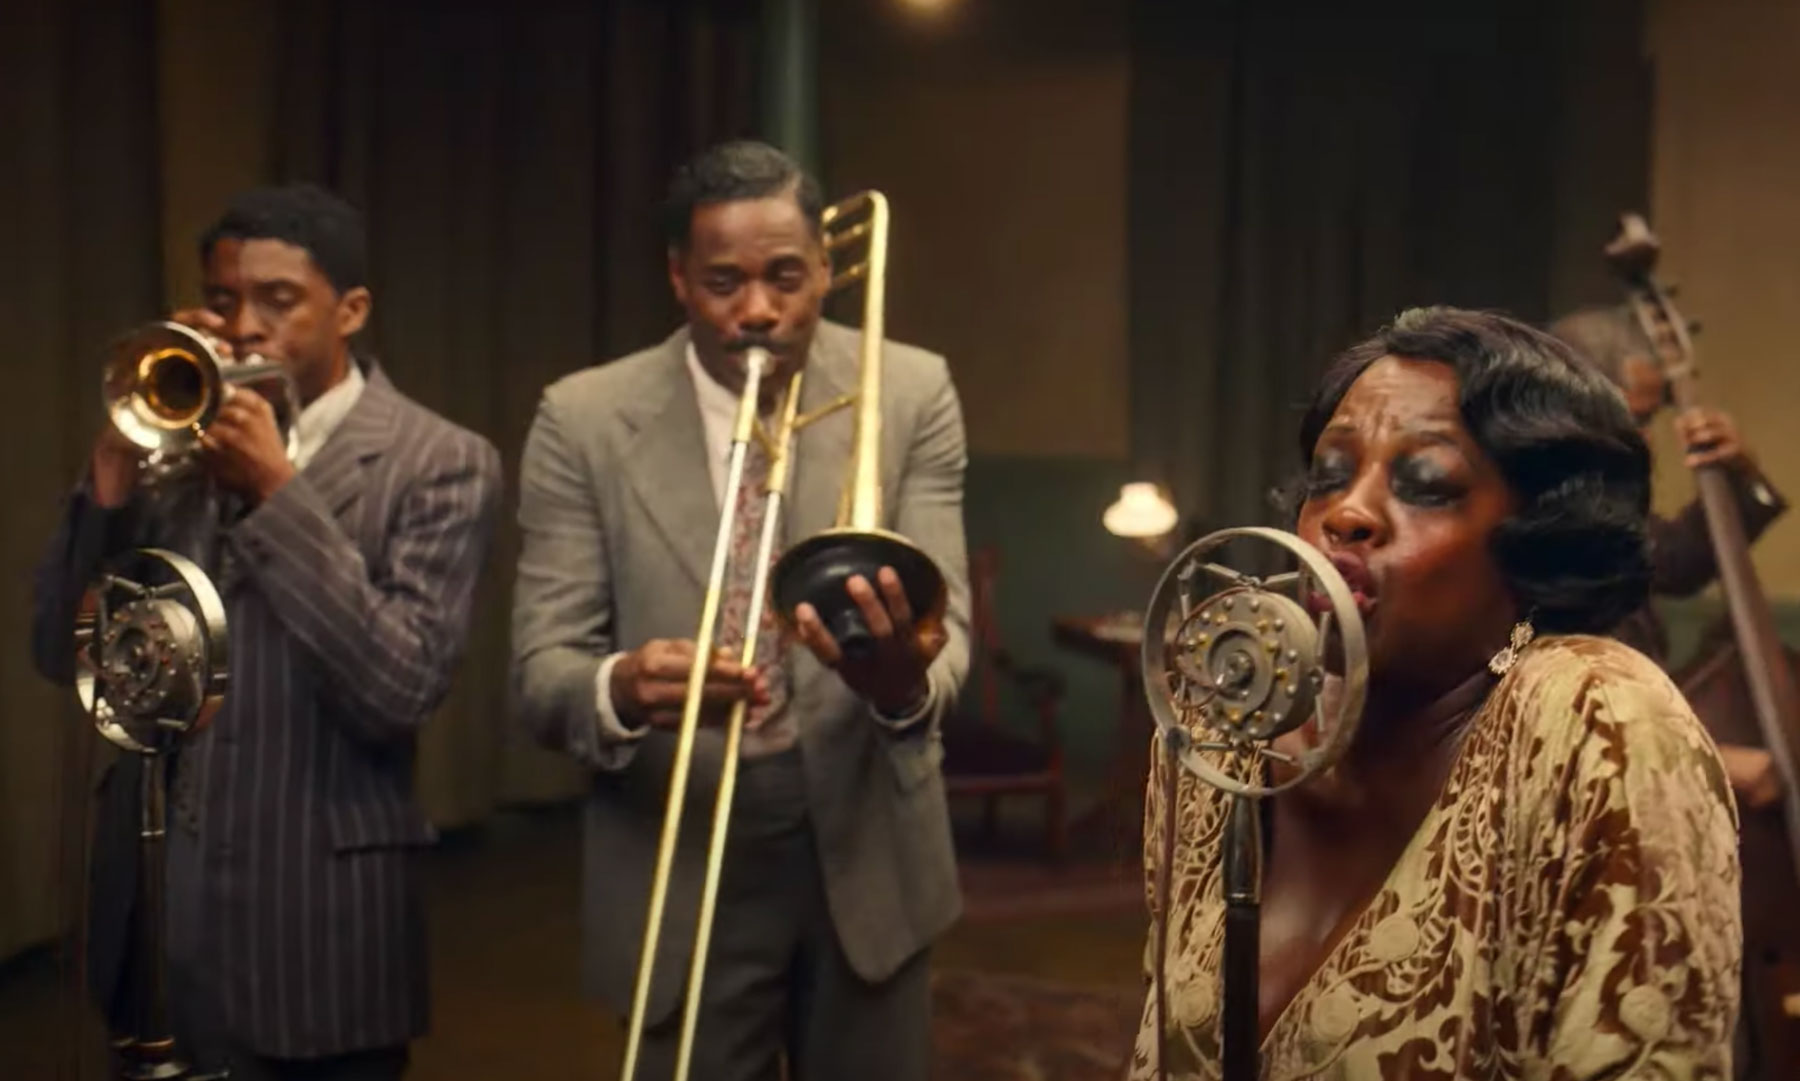 Ma Rainey's Black Bottom: Social impact films 2020